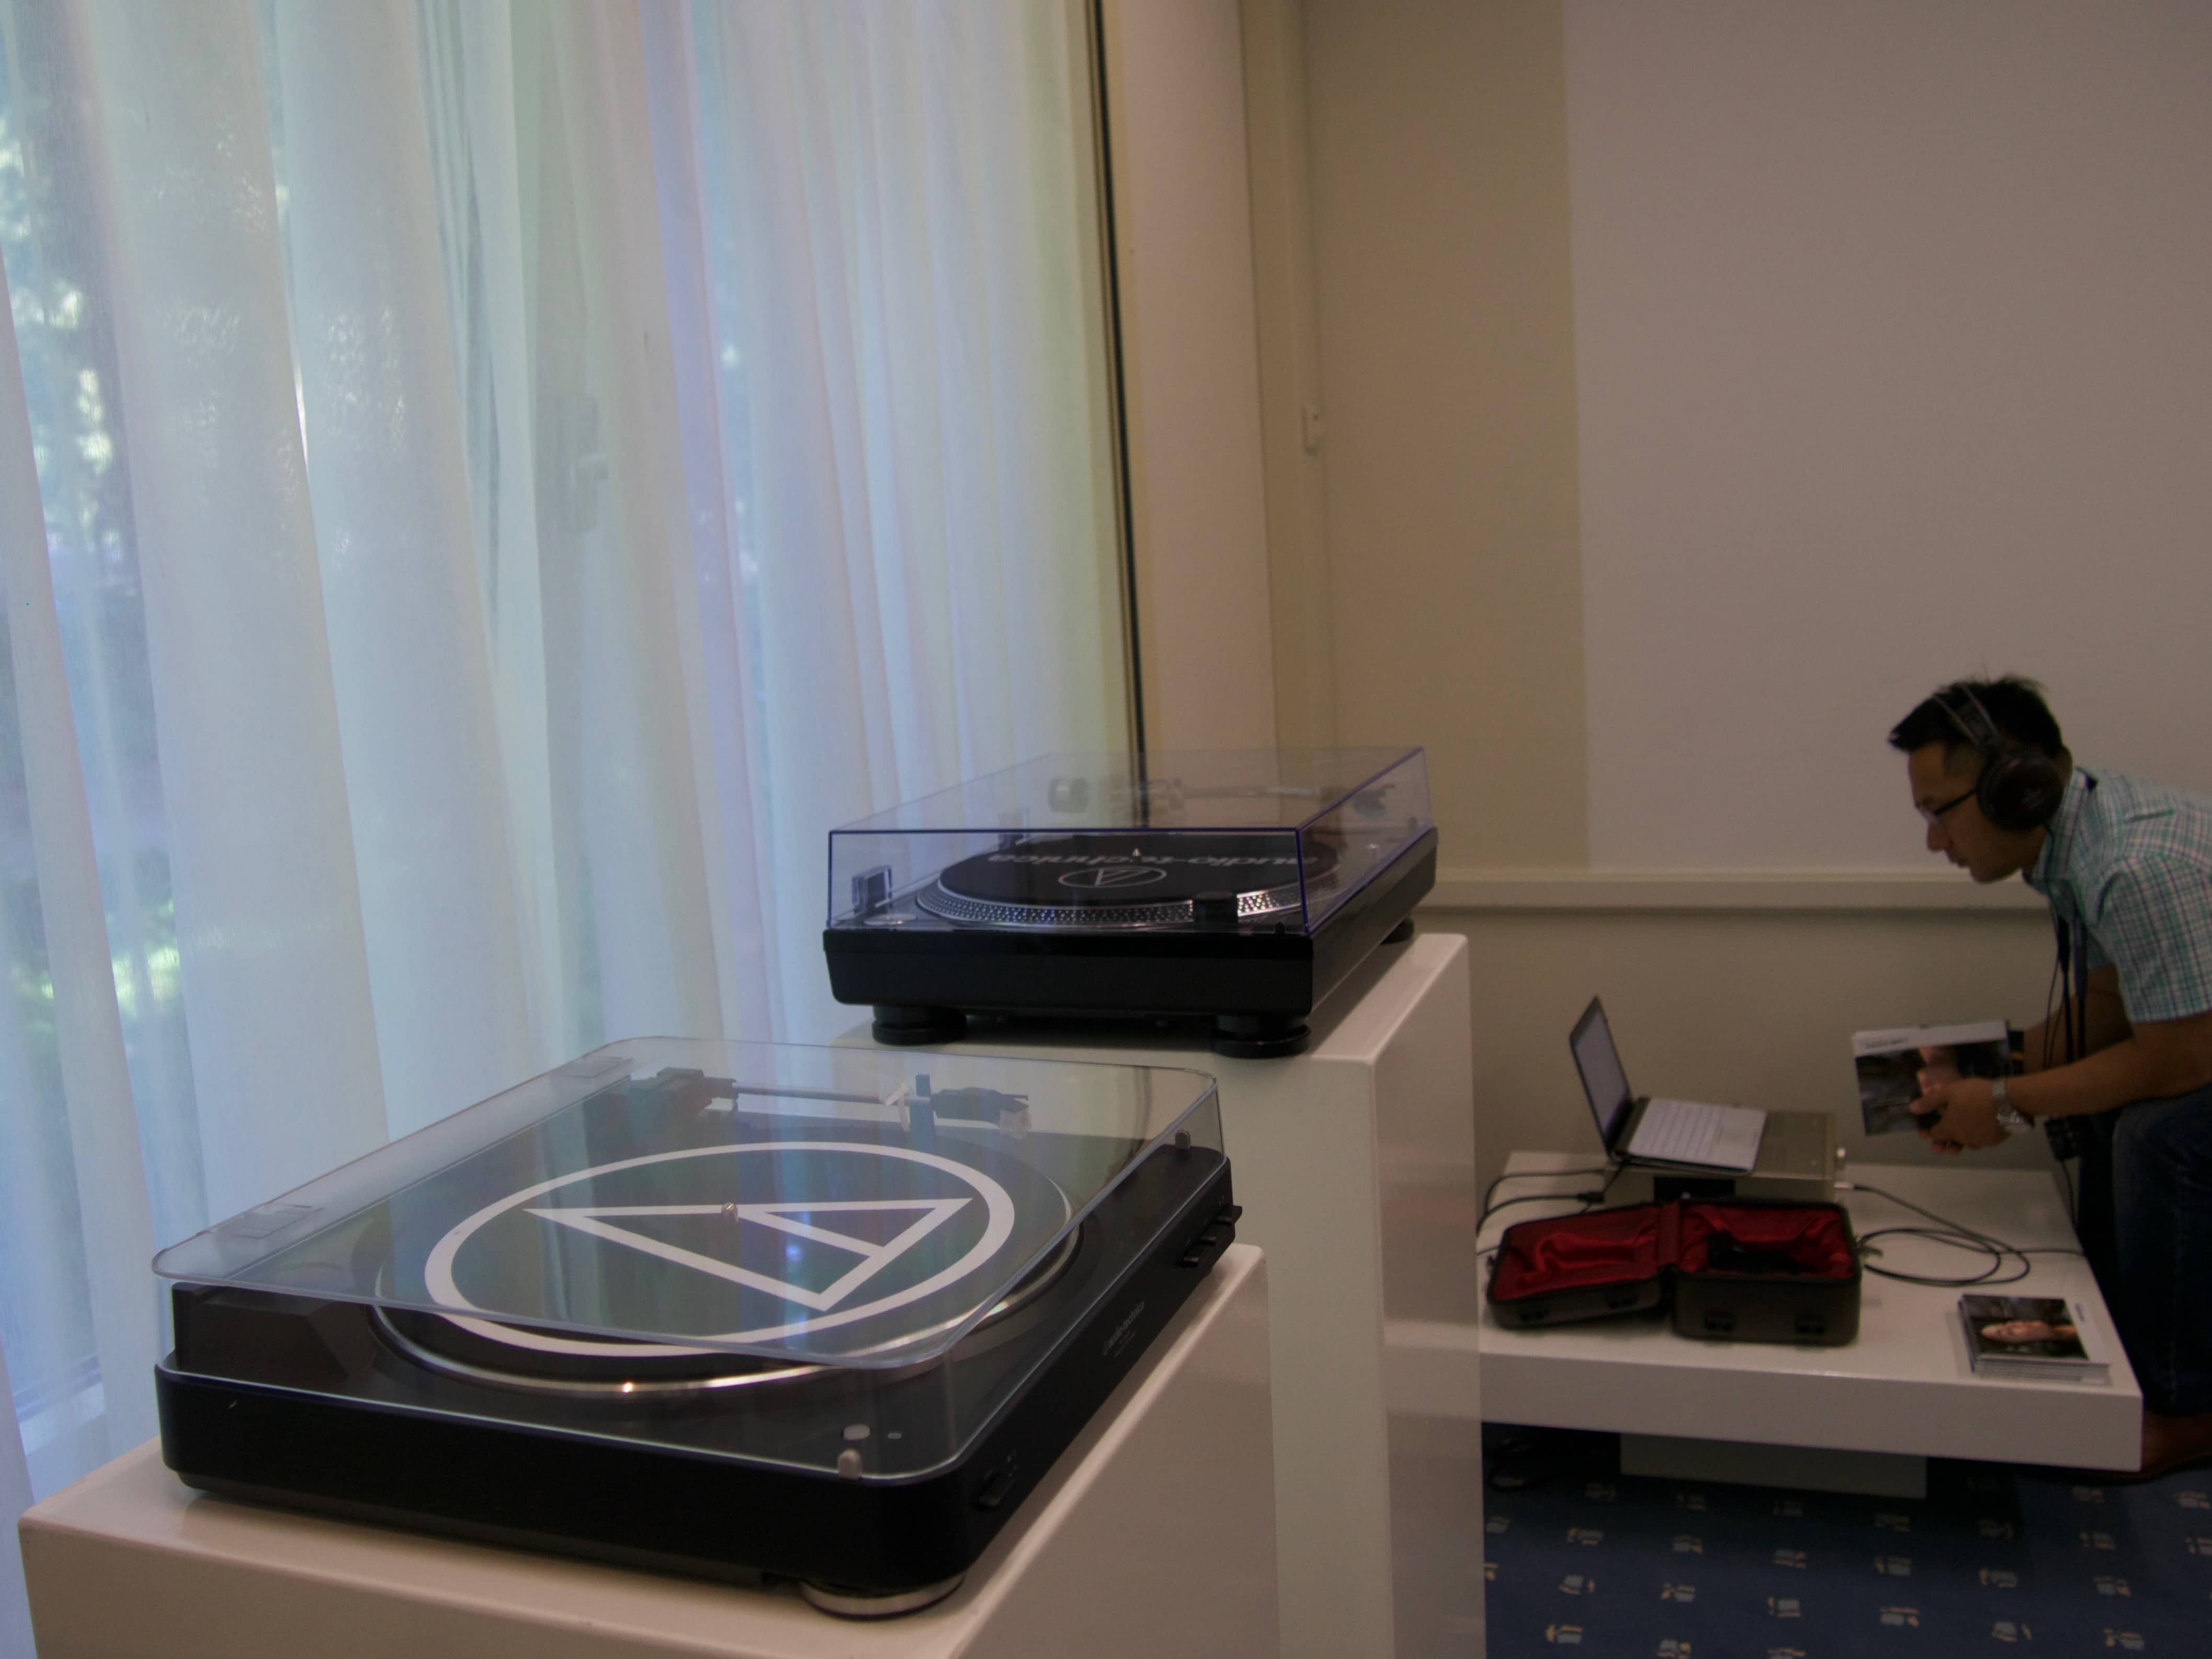 Iemke Roos BV - Audio Technica - X-FI High End audio show 2016